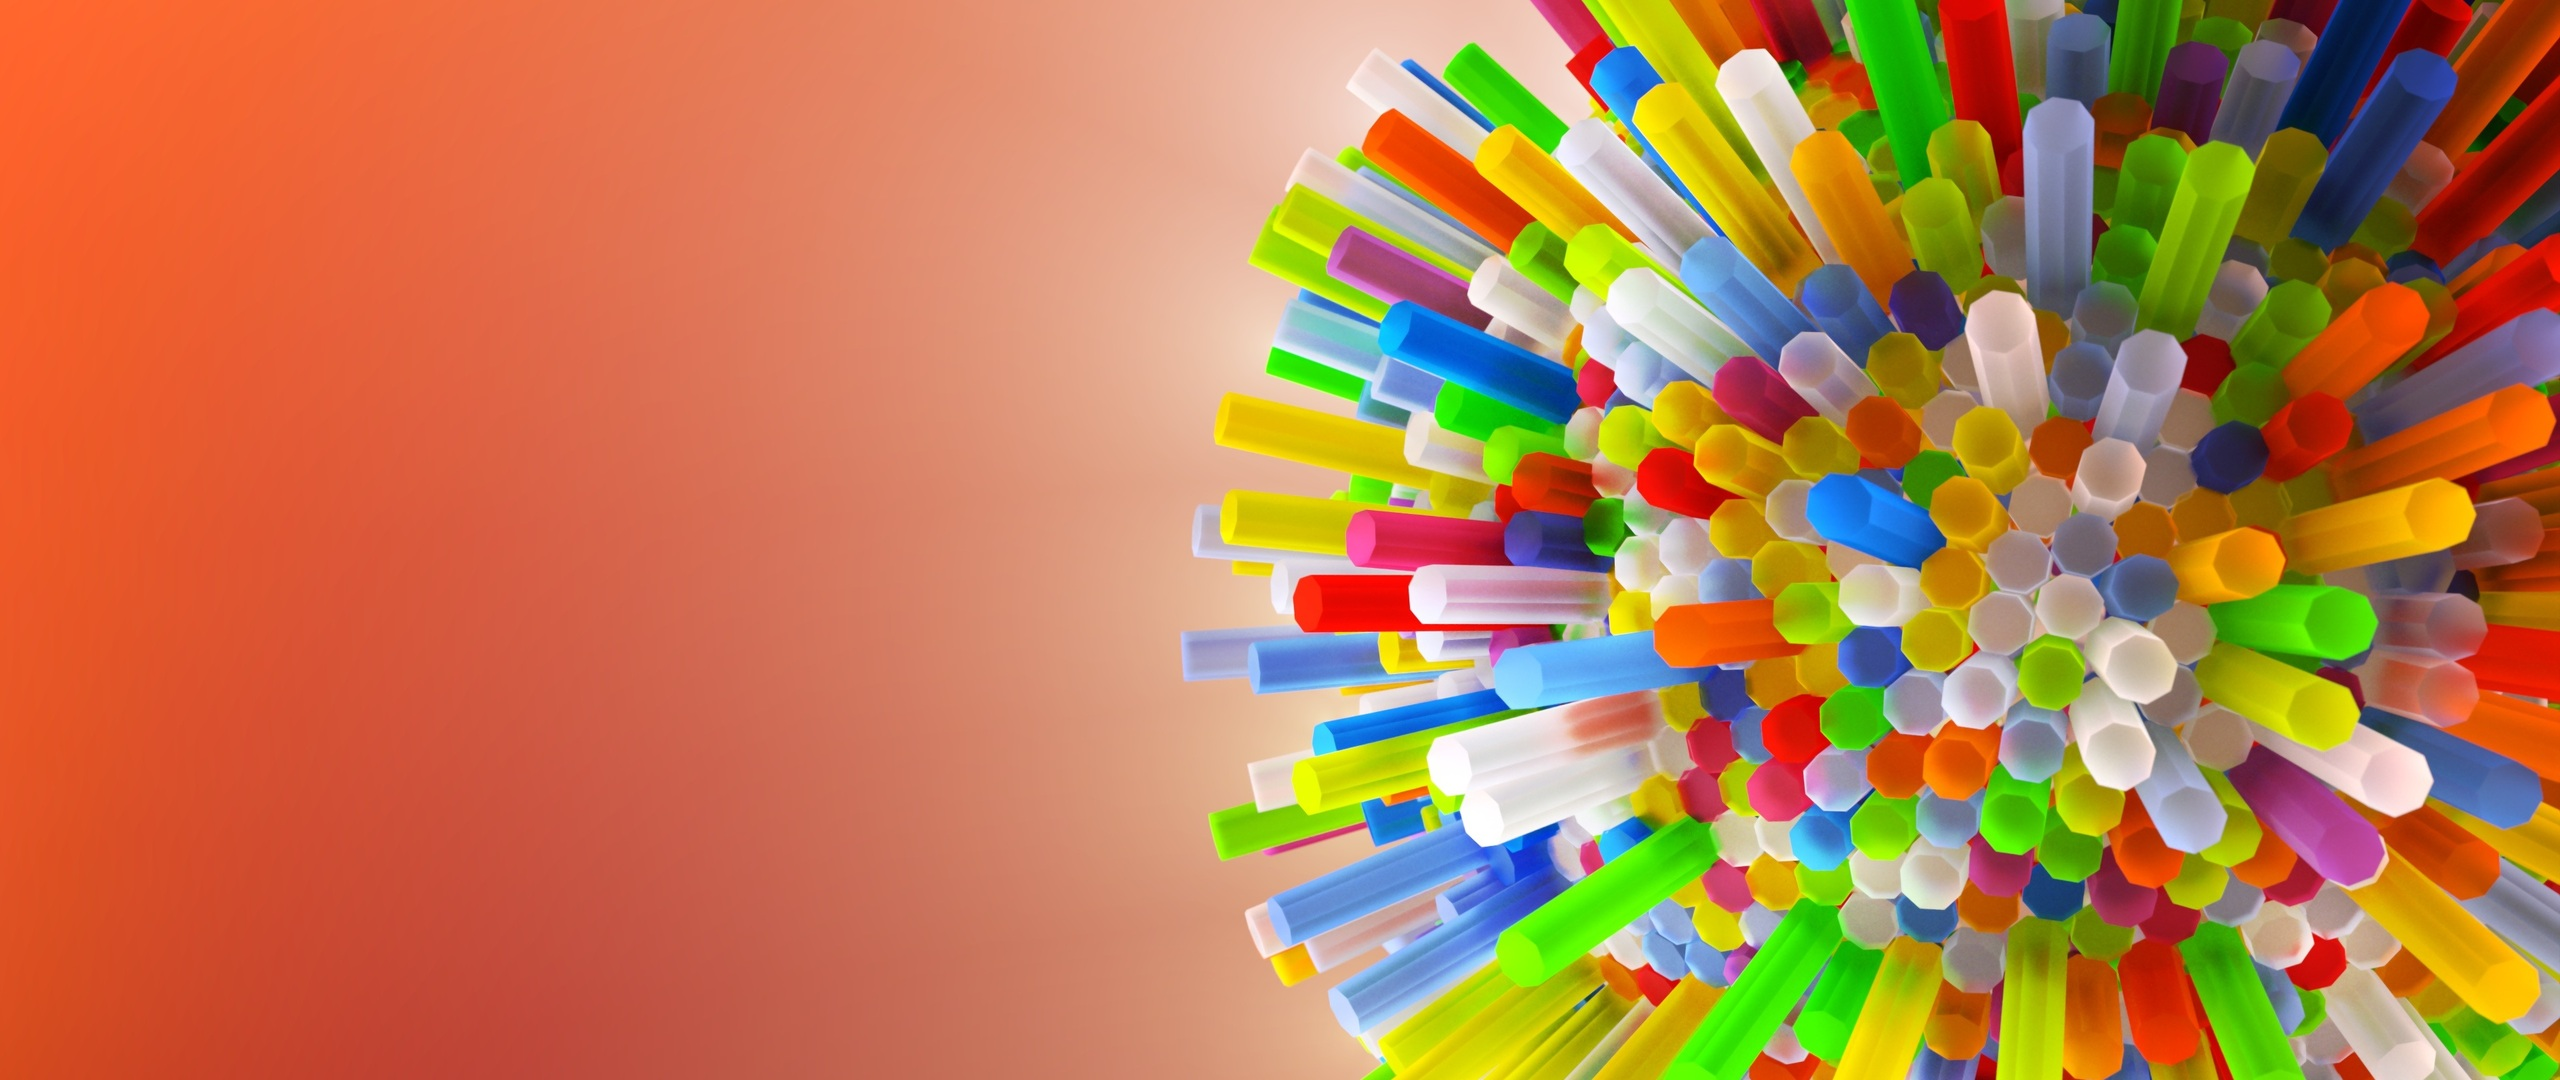 colorful-3d-pipes-new.jpg